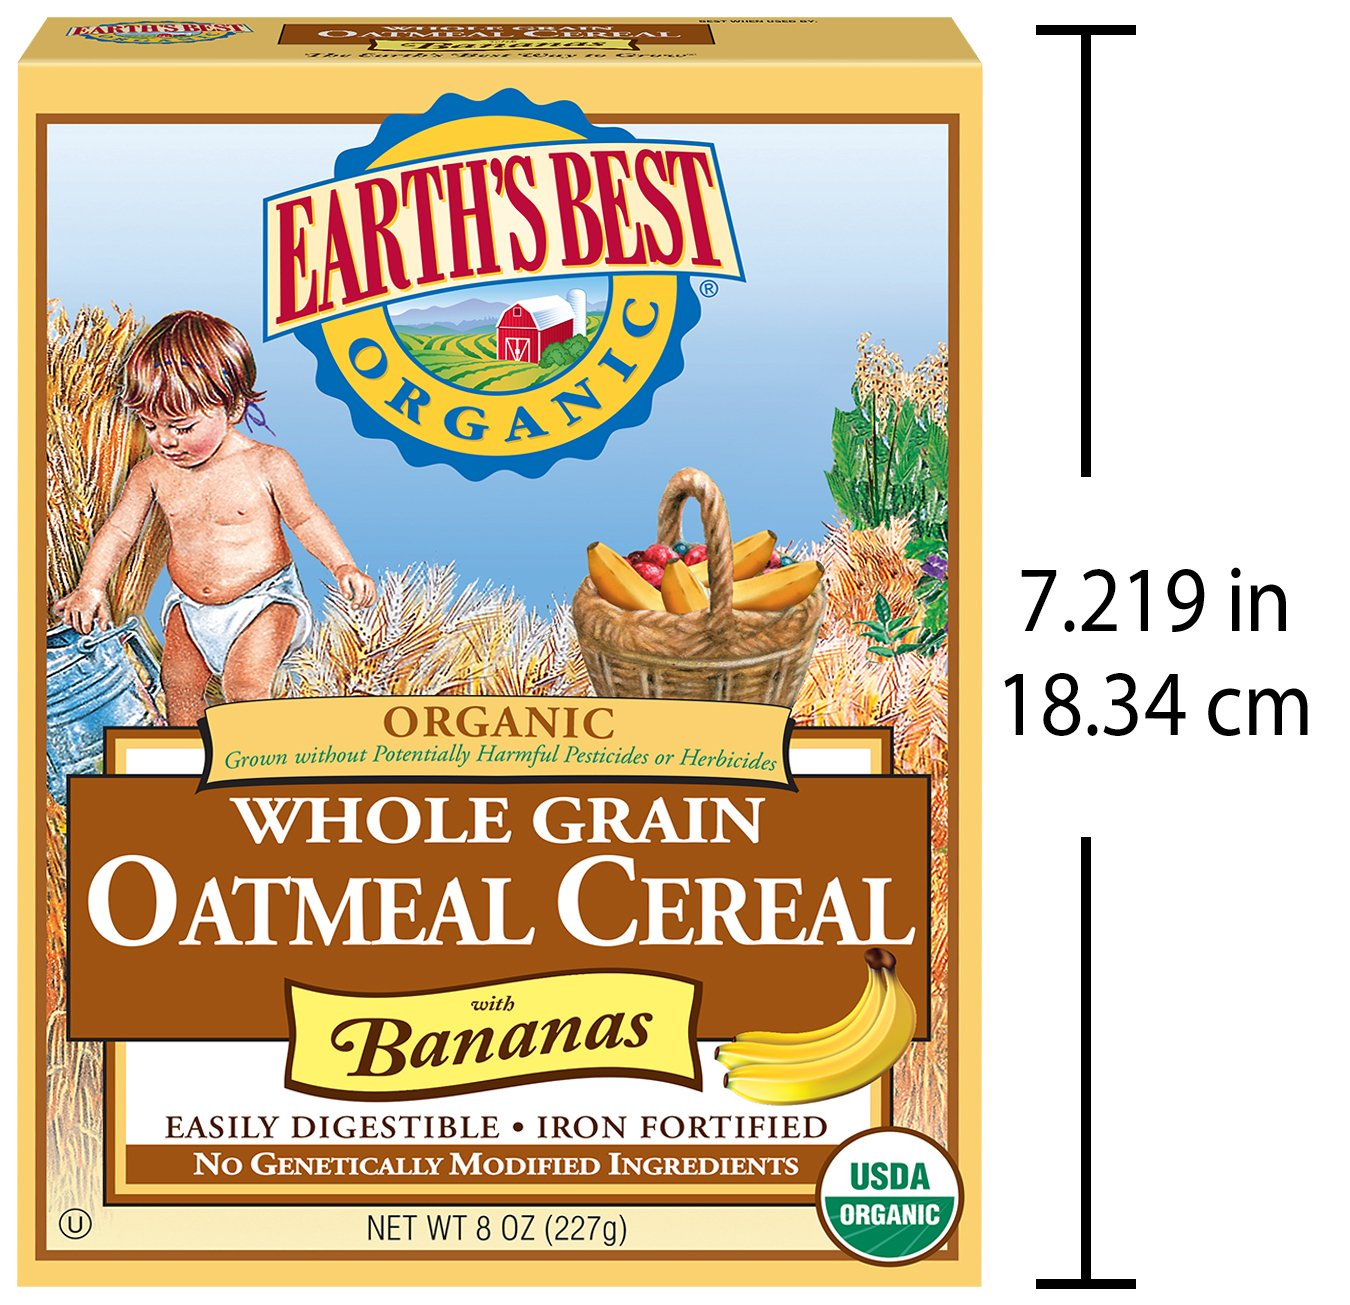 Earth's Best Organic Infant Cereal, Whole Grain Oatmeal with Bananas, 8 Oz - Packaging May Vary by Earth's Best (Image #7)